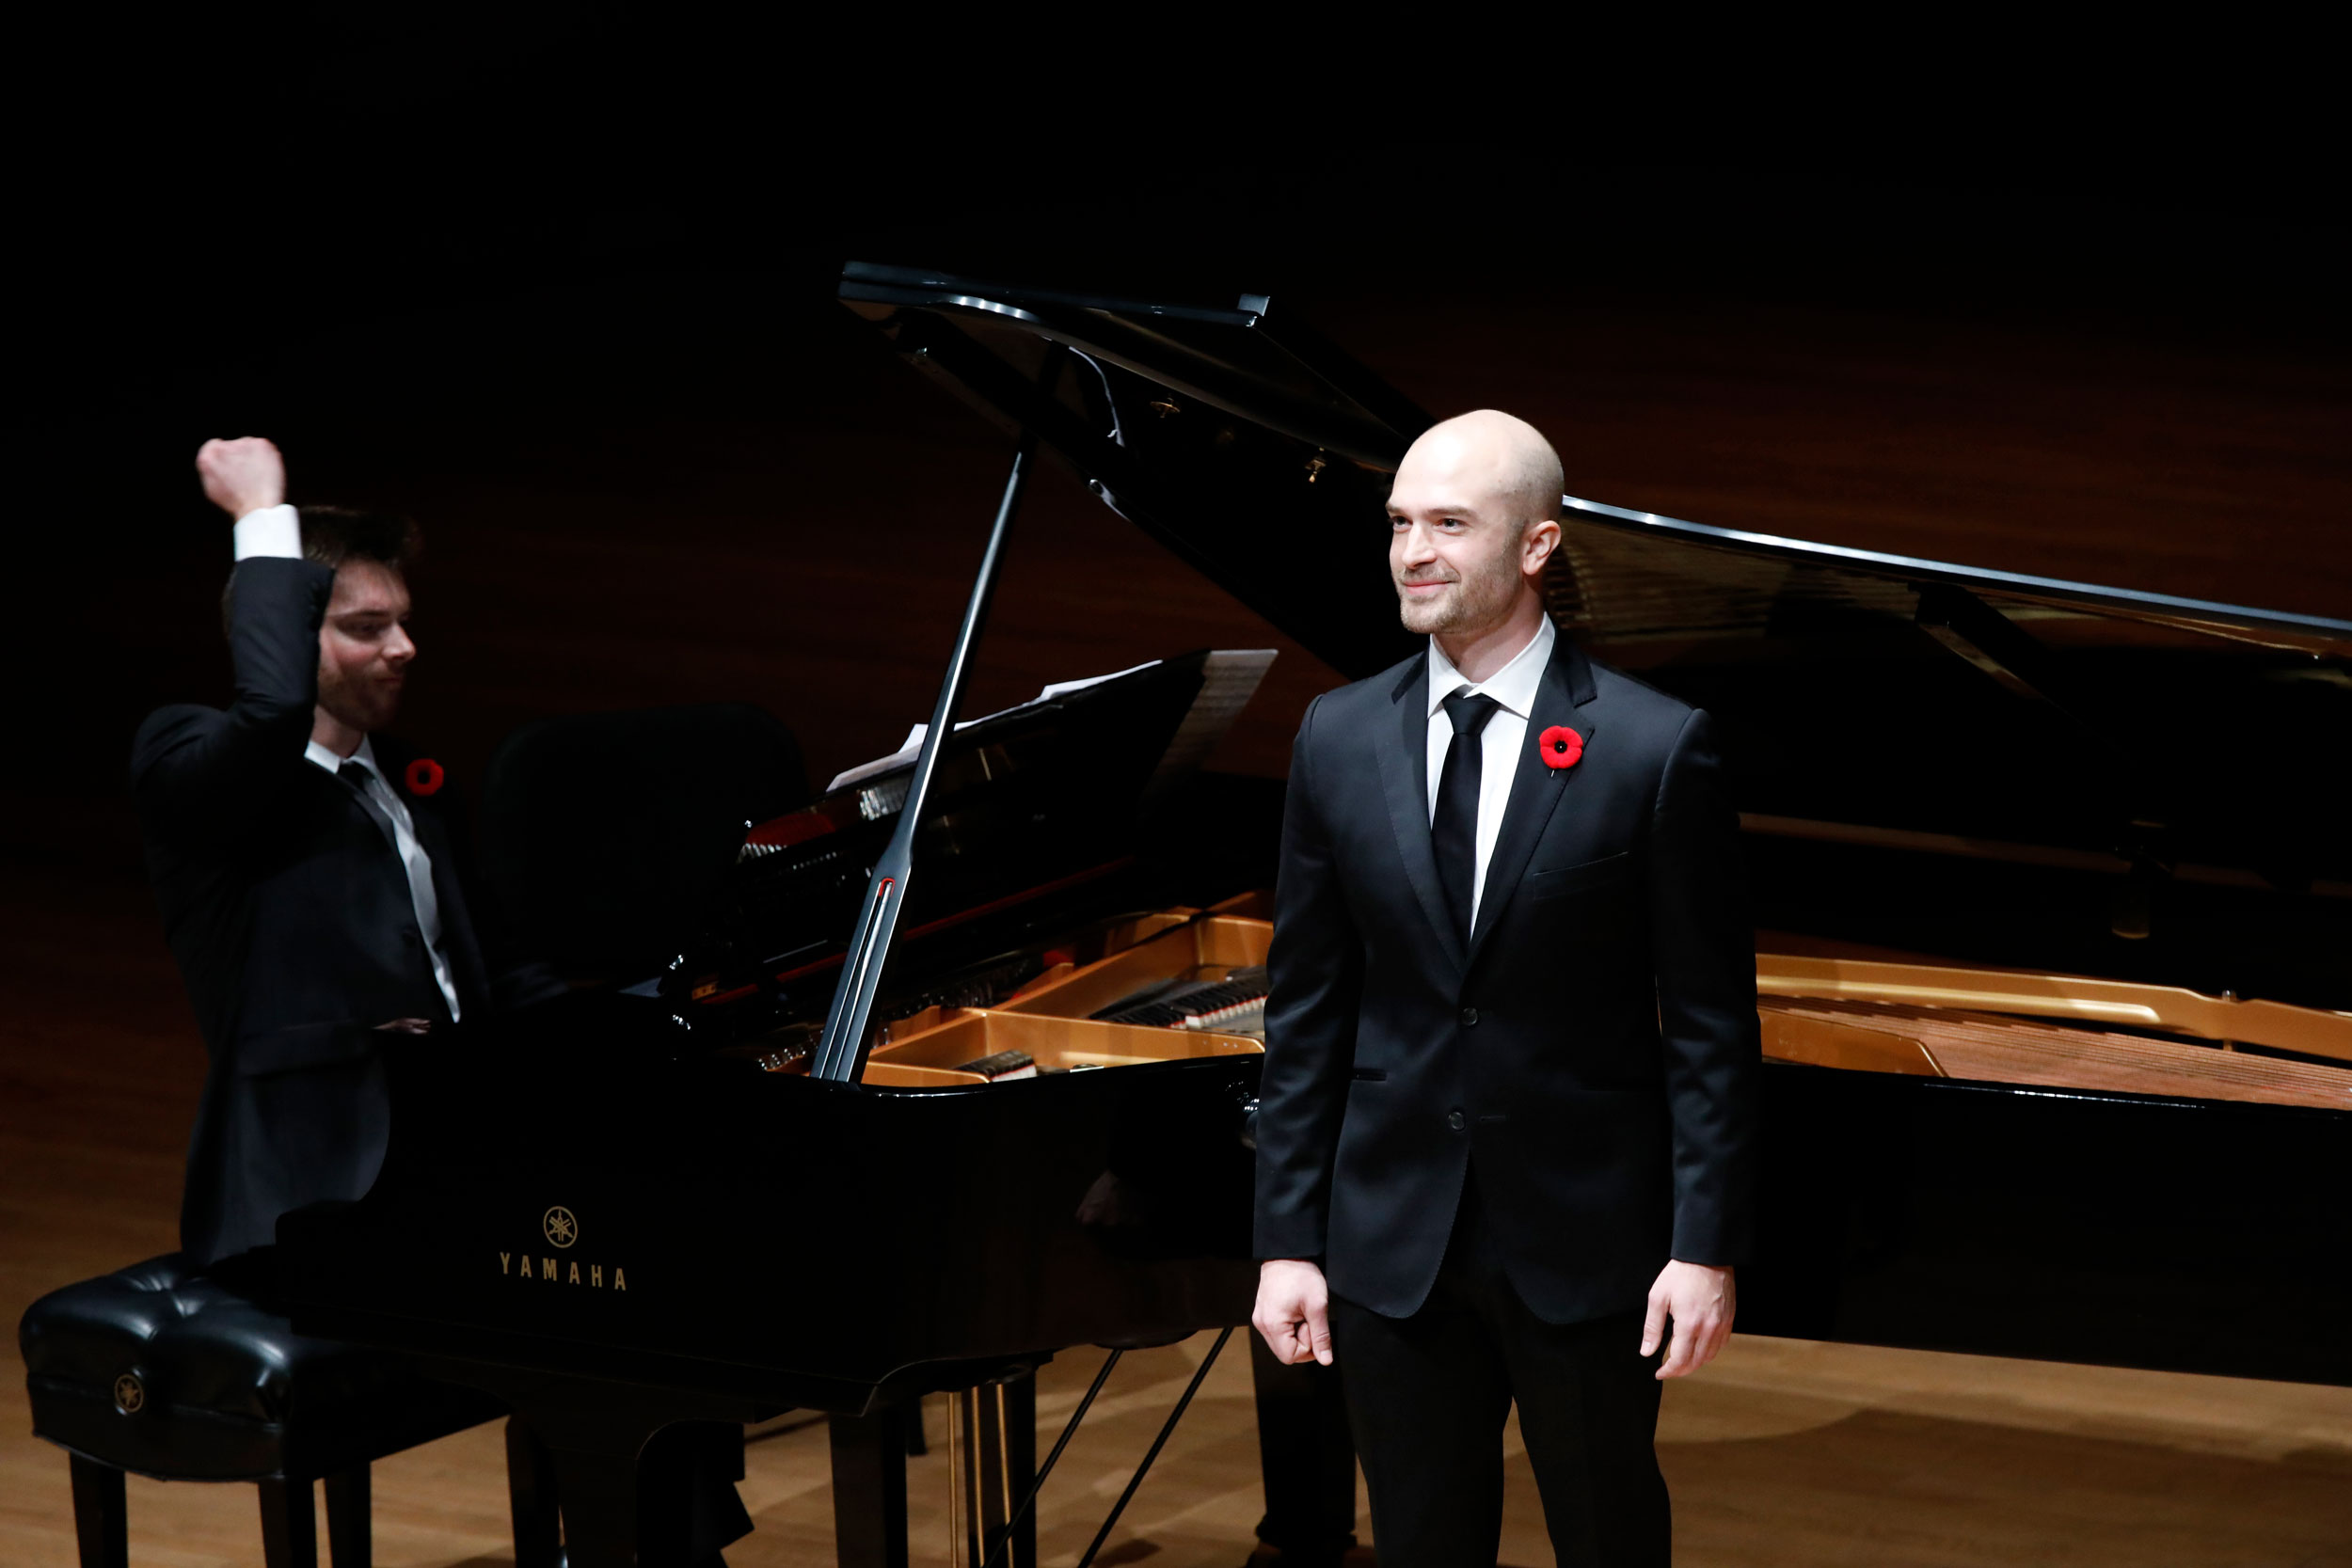 WORLD WAR I MEMORIAL IN SONG